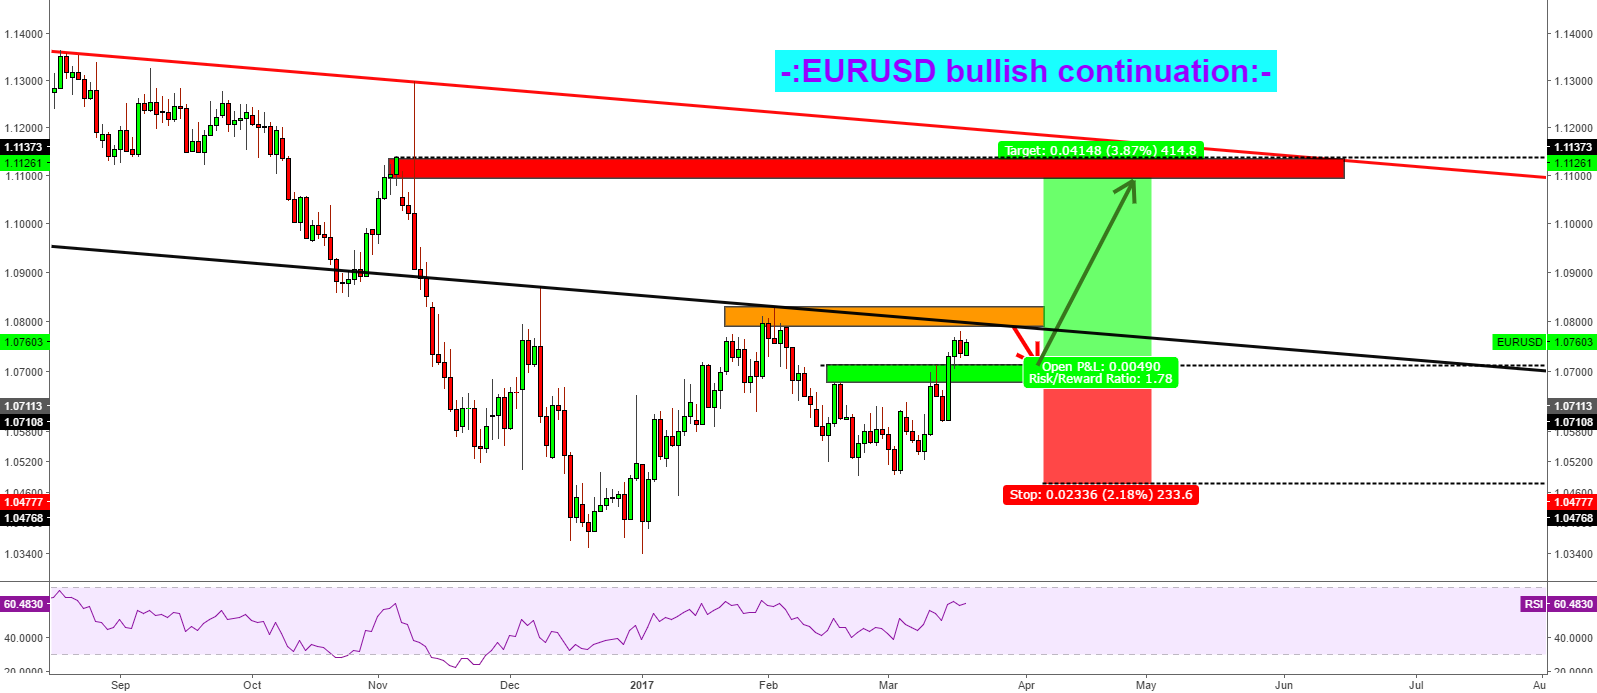 EURUSD Bullish continuation!!!!!!